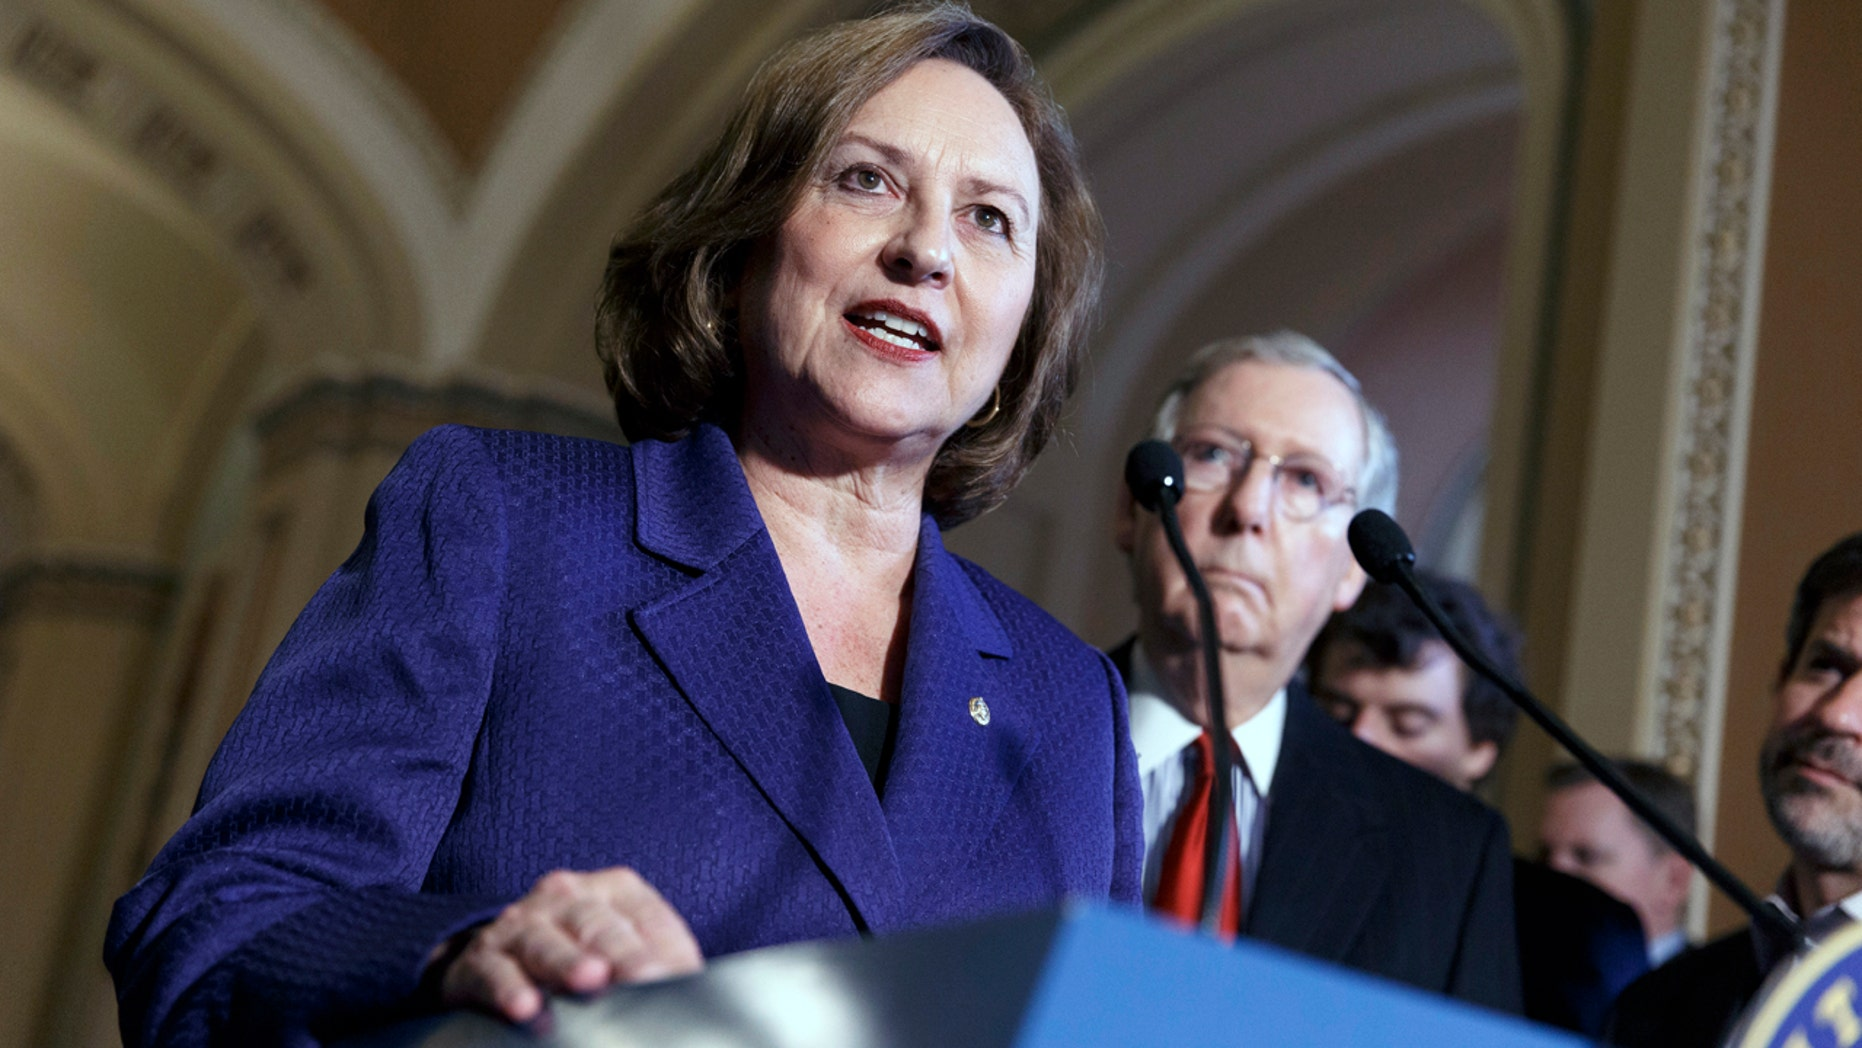 Sen. Deb Fischer, R-Neb., will battle Lincoln City Councilwoman Jane Raybould in November's general election